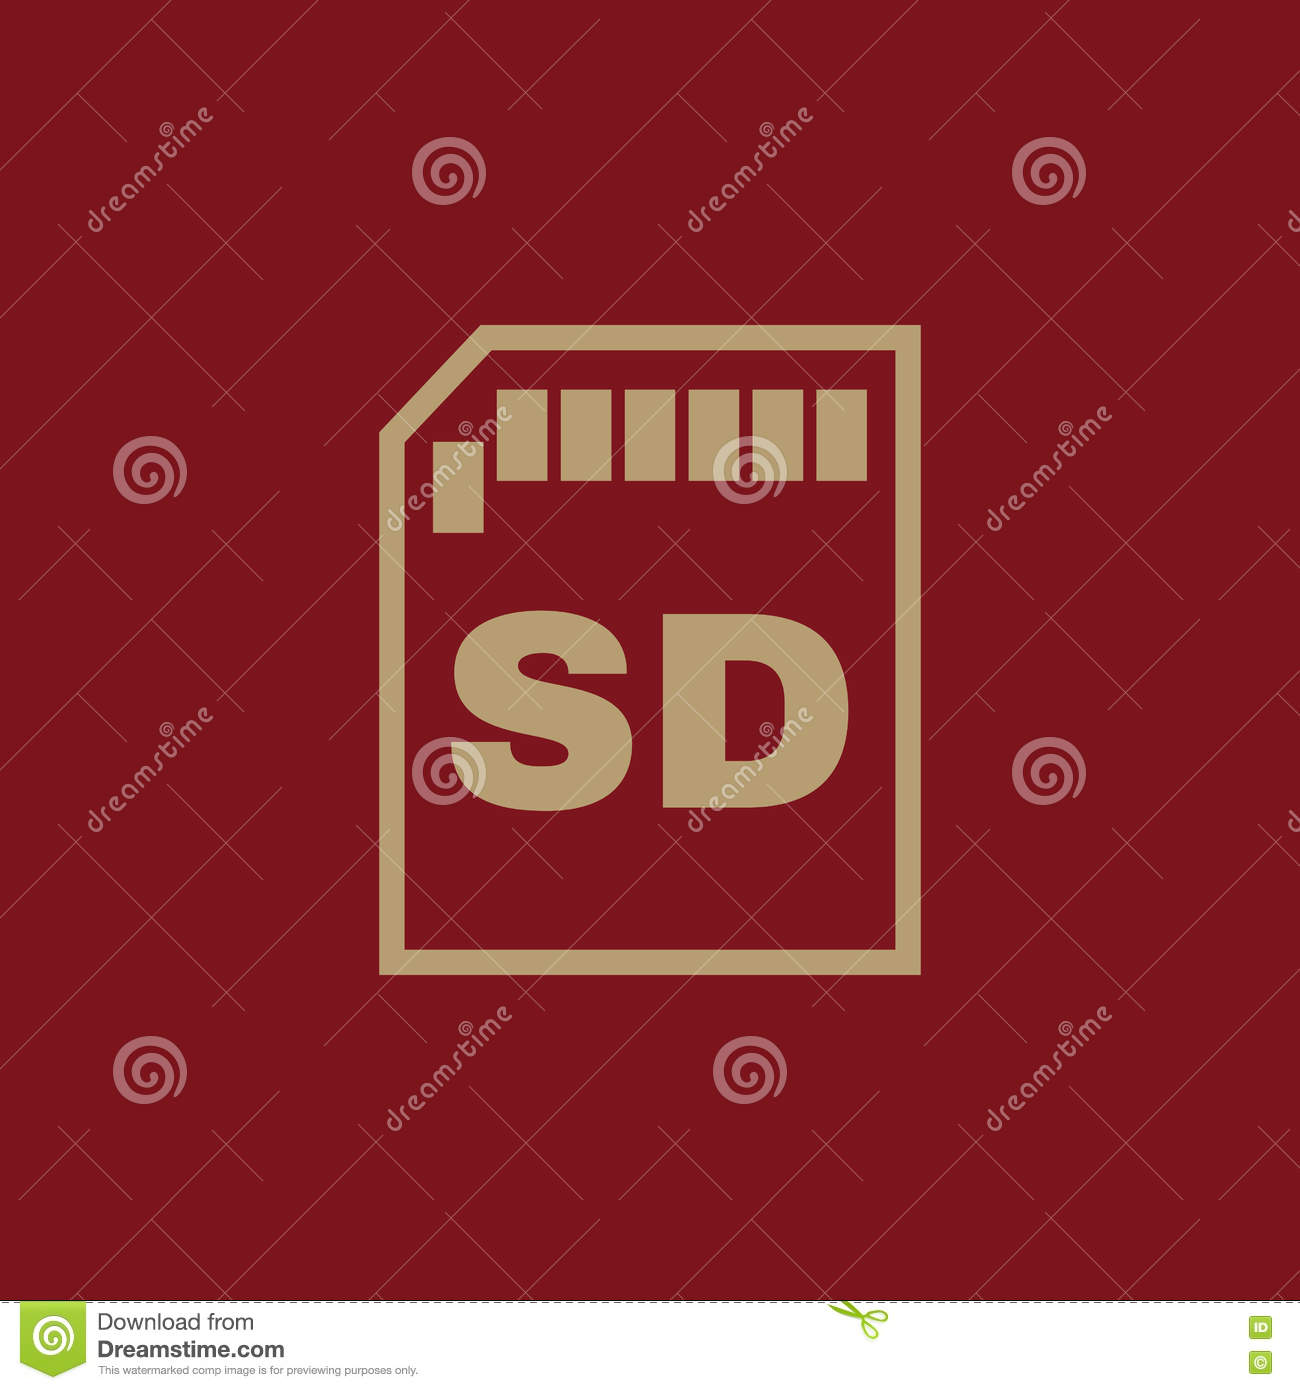 The sd card icon transfer and connection data sd card symbol the sd card icon transfer and connection data sd card symbol ui web logo sign flat design app stock biocorpaavc